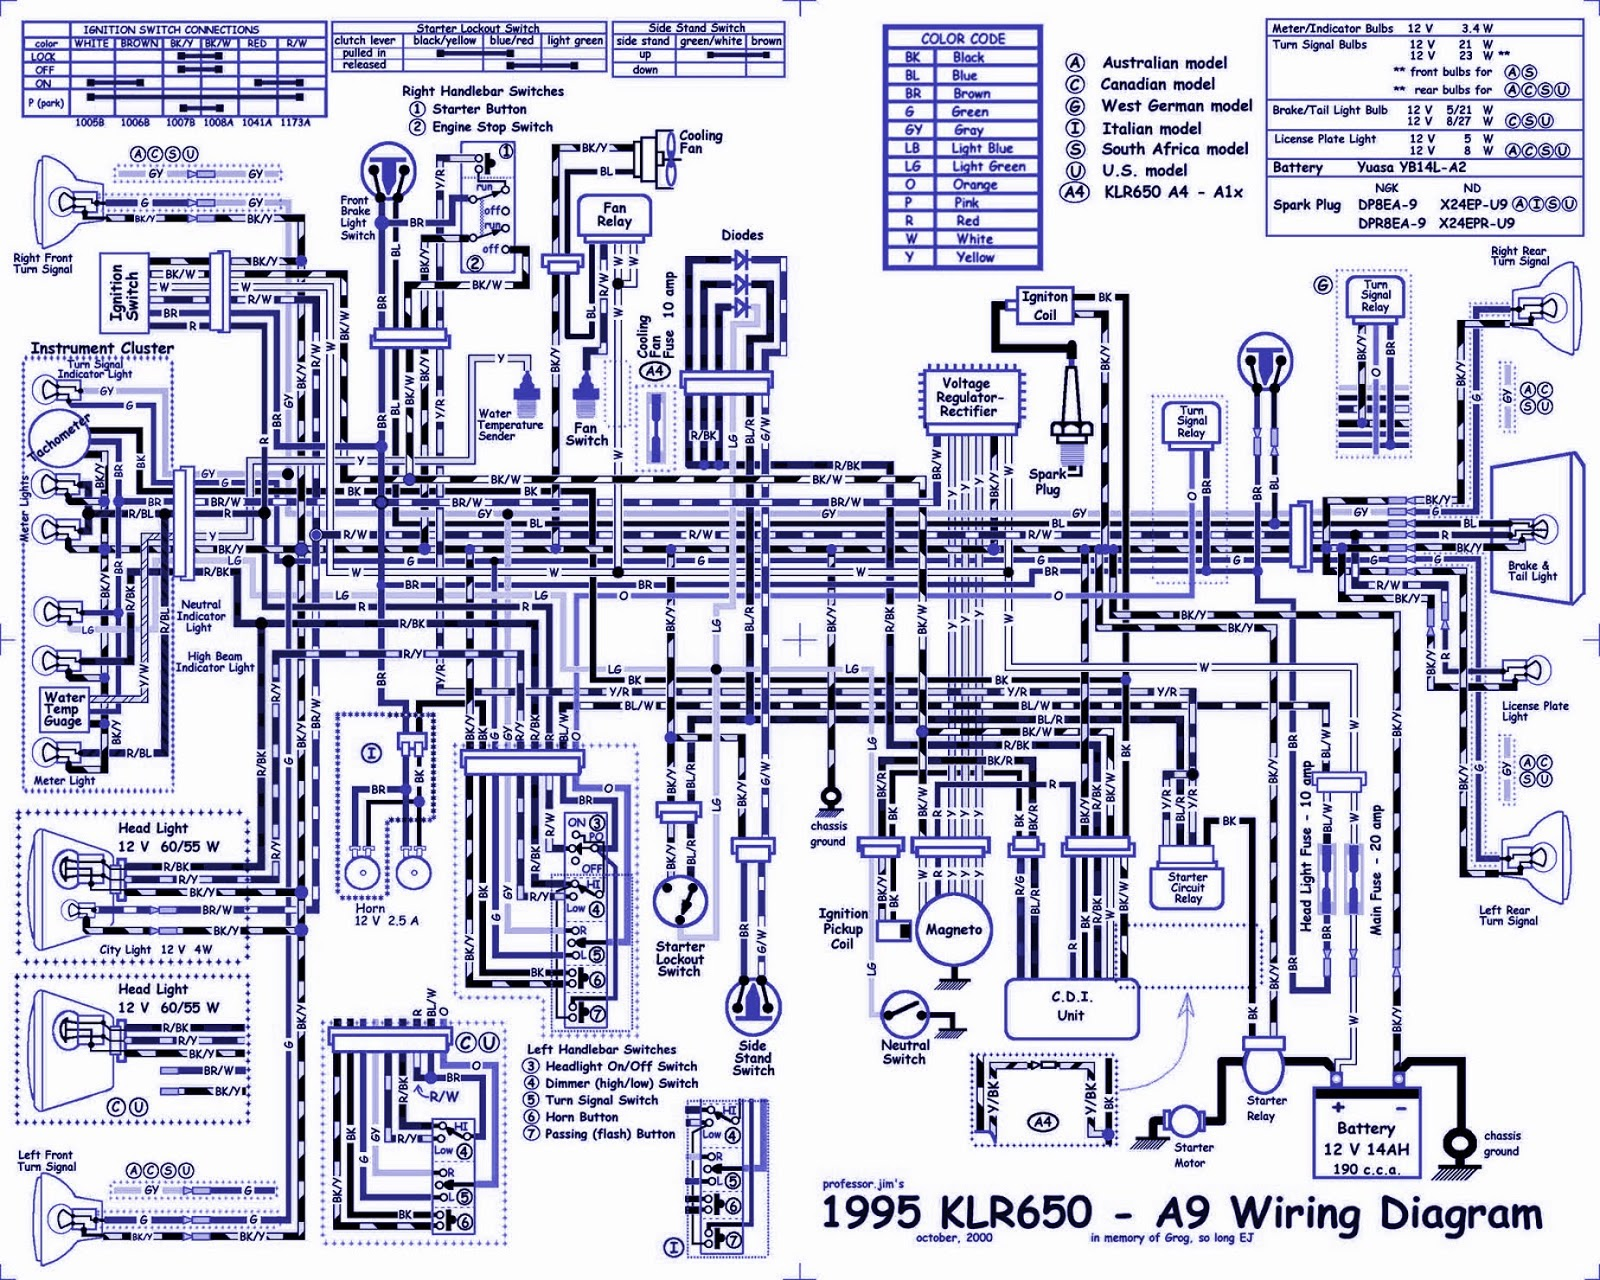 klr 250 turn signals wiring diagram chevrolet monte carlo 1974 electrical wiring diagram ...